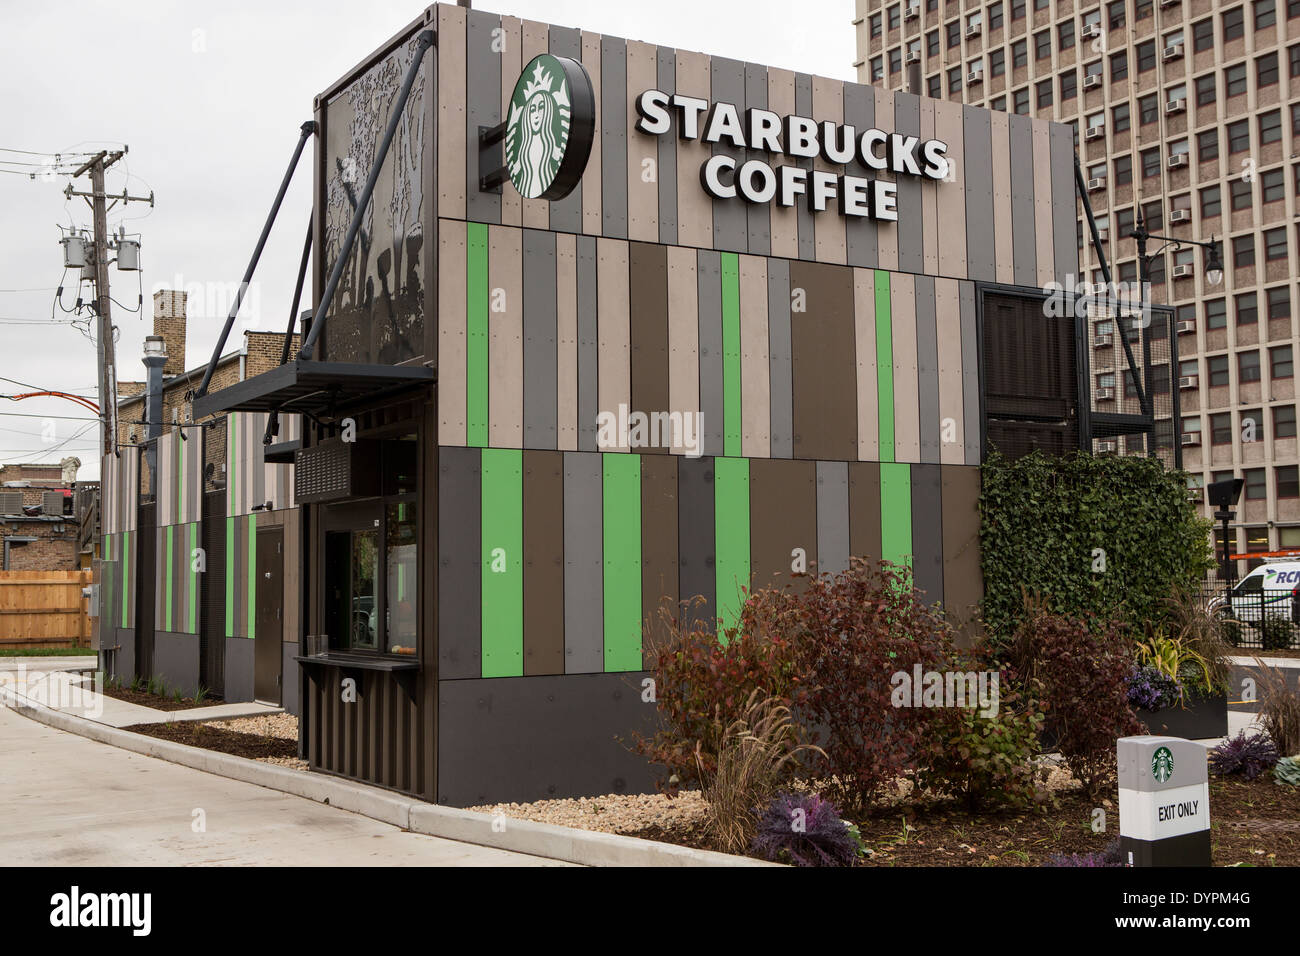 Starbucks Coffee shop built out of recycled shipping containers in Chicago, Illinois USA. Located at the corner of Broadway and Devon the drive-thru only store is part of Starbucks' strategy to develop store concepts from re-purposed materials. Stock Photo